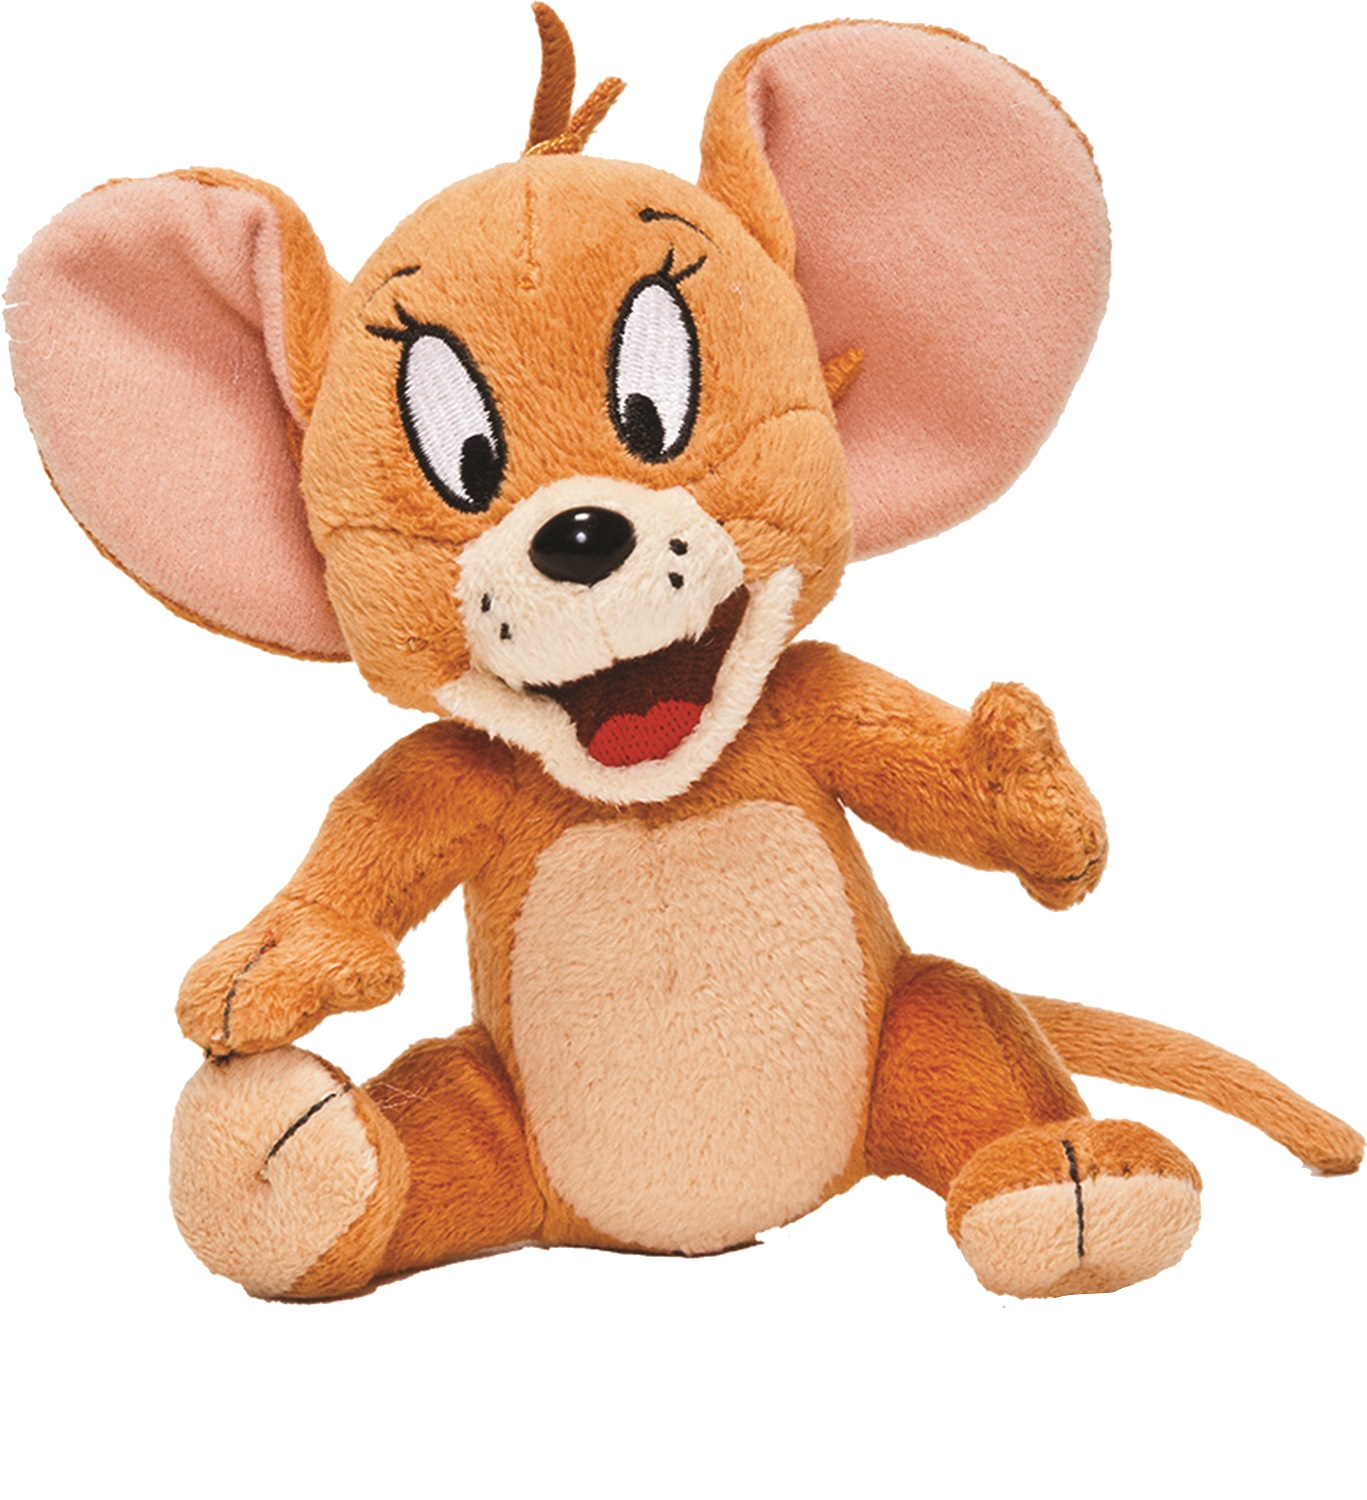 PELUCHE DISNEY - LOONEY TUNES - Tom e Jerry - JERRY - 15 cm